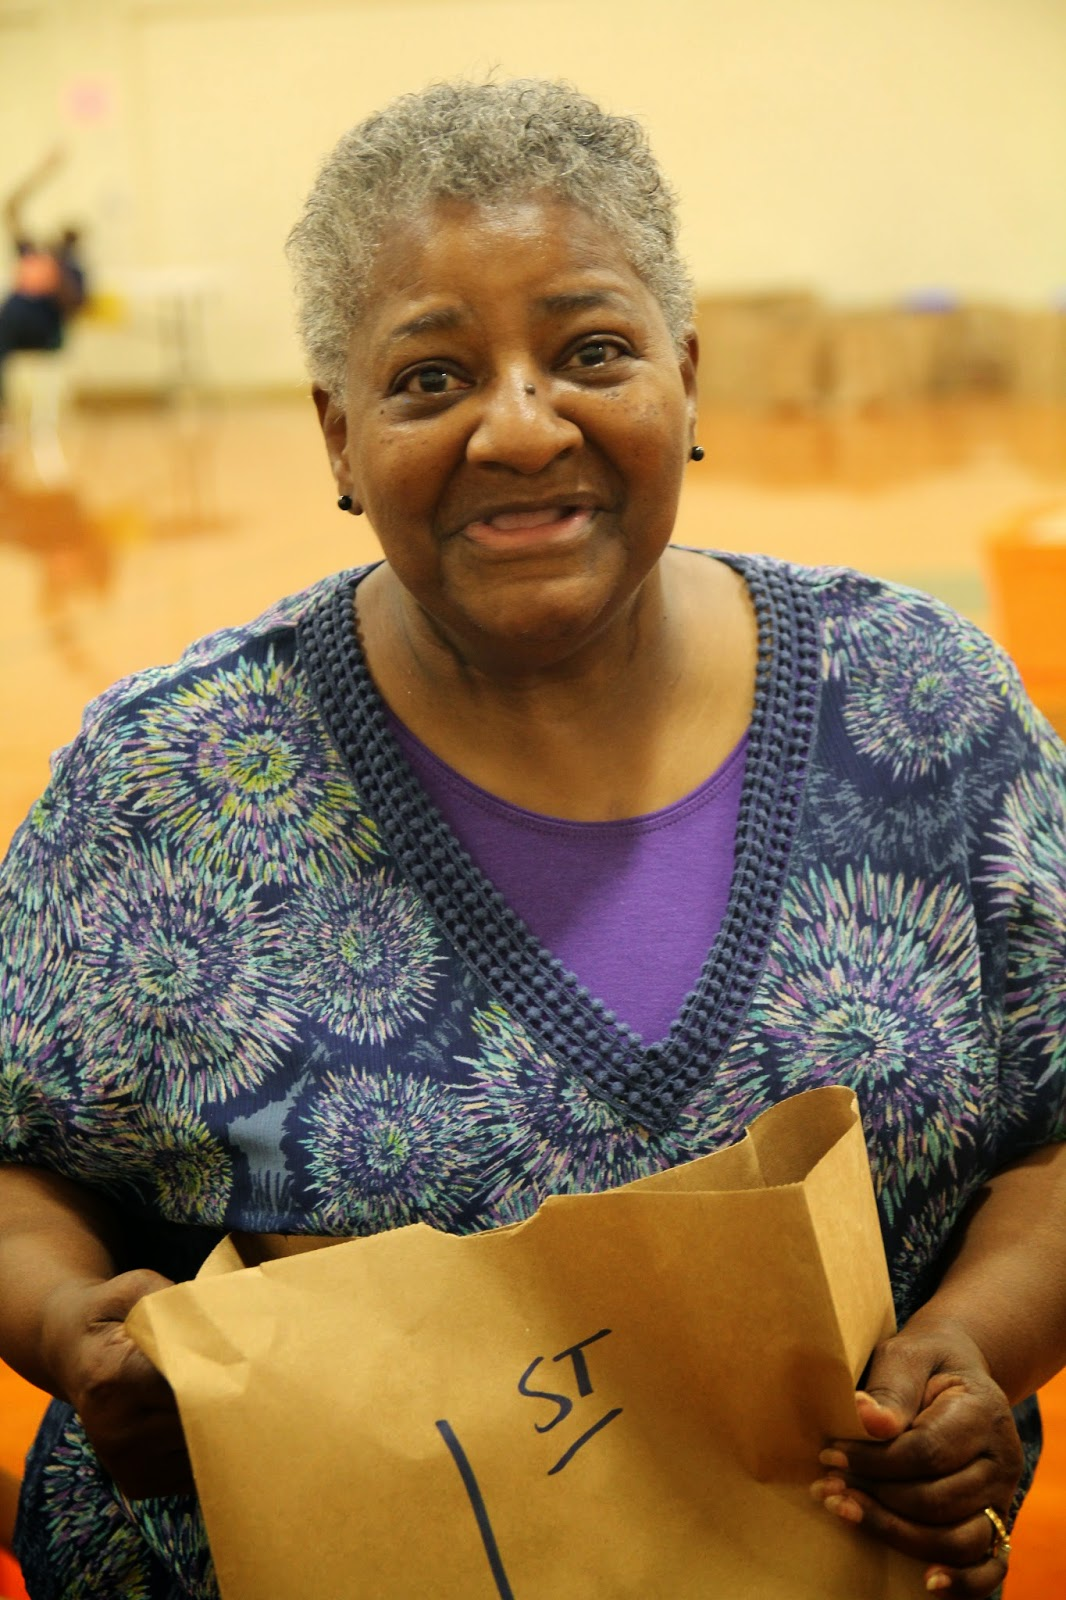 the h factor annual back to school supplies giveaway is tomorrow gloria smallwood self described oldest volunteer